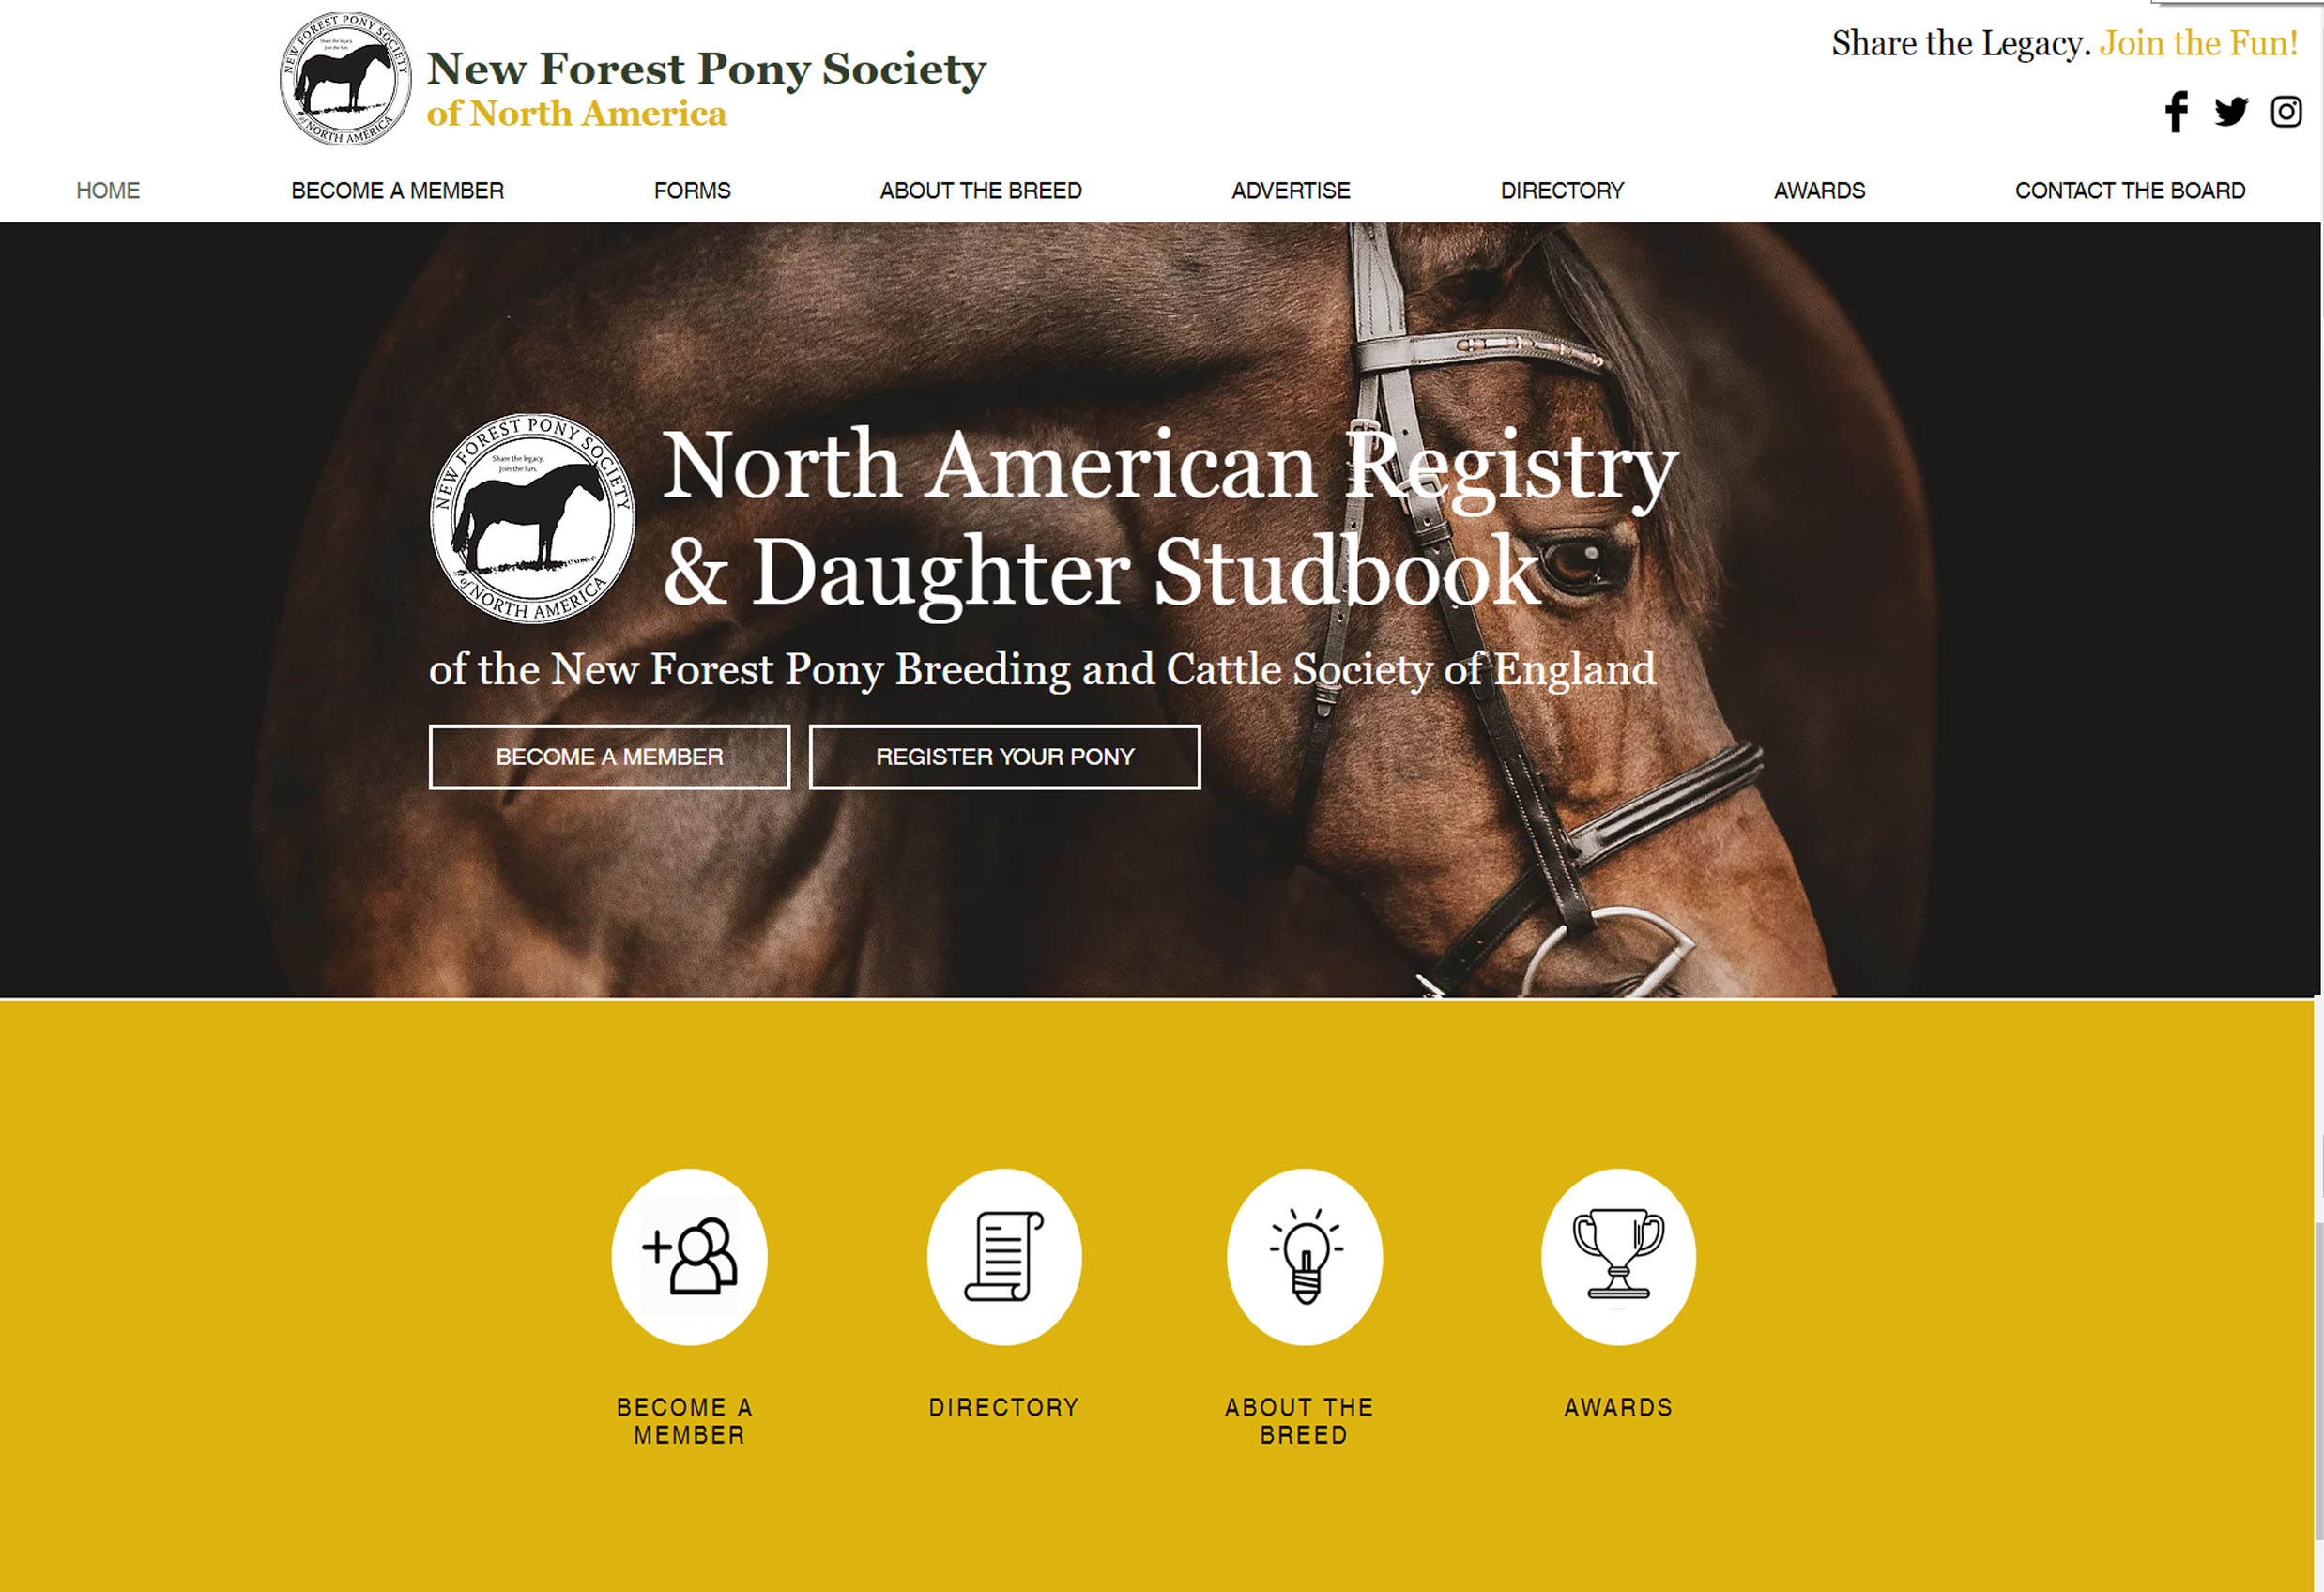 New Forest Pony Society